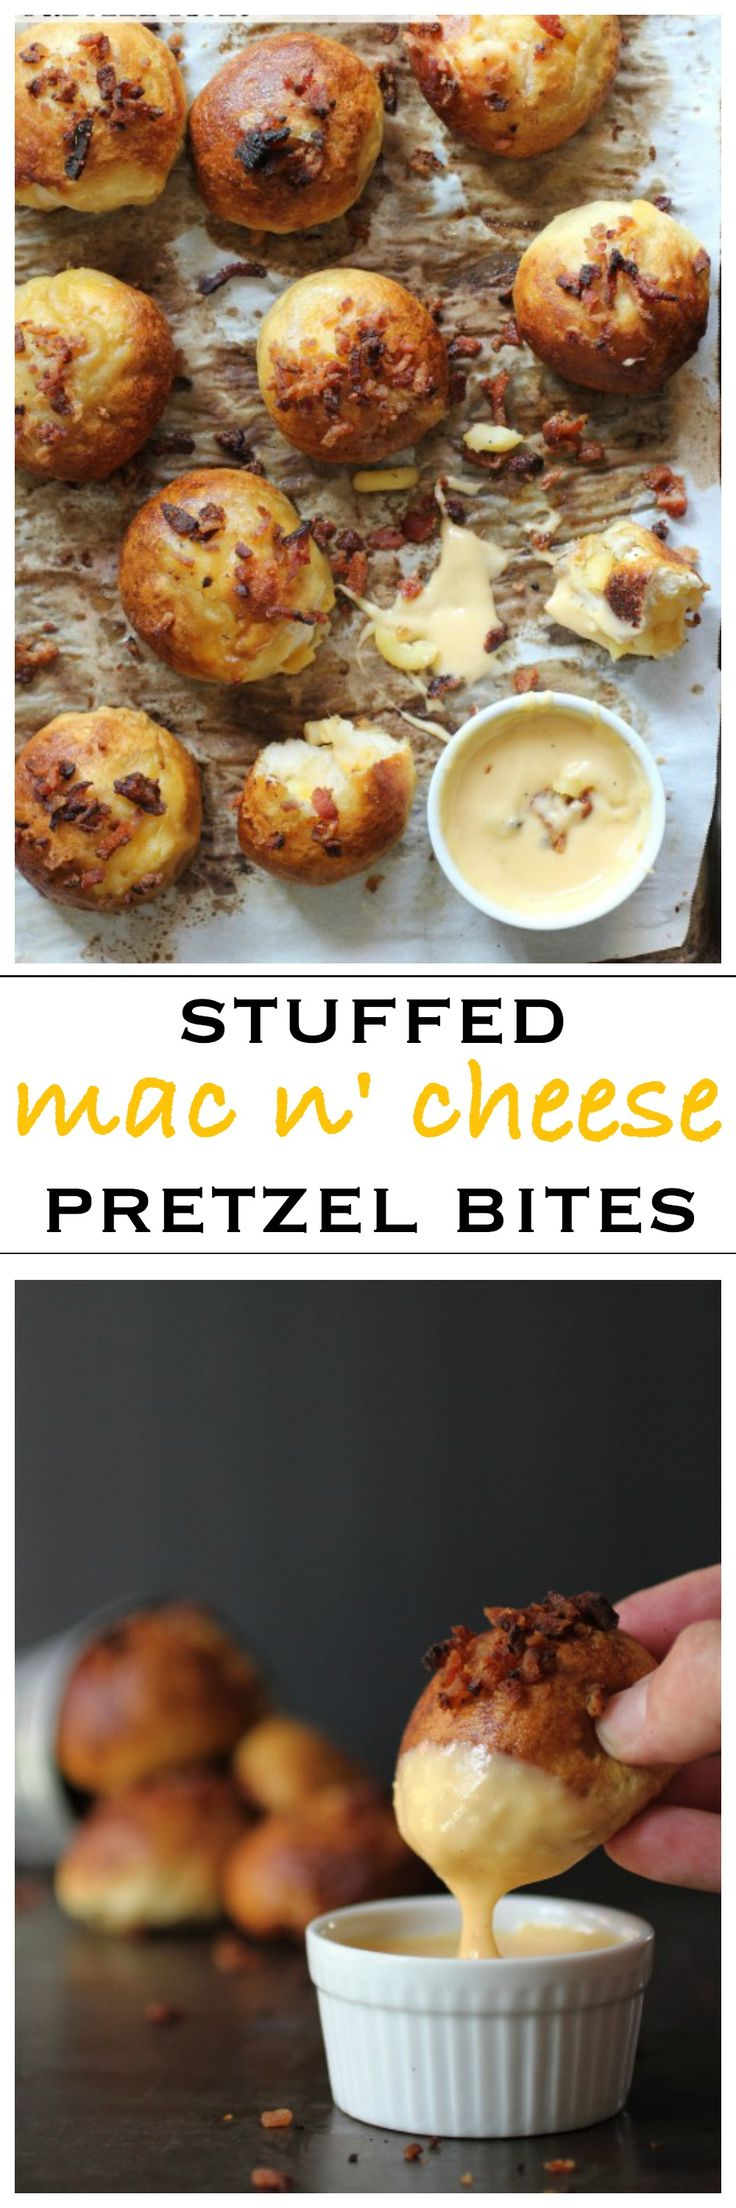 Pretzel bites stuffed with mac and cheese, dipped in a beer cheese sauce